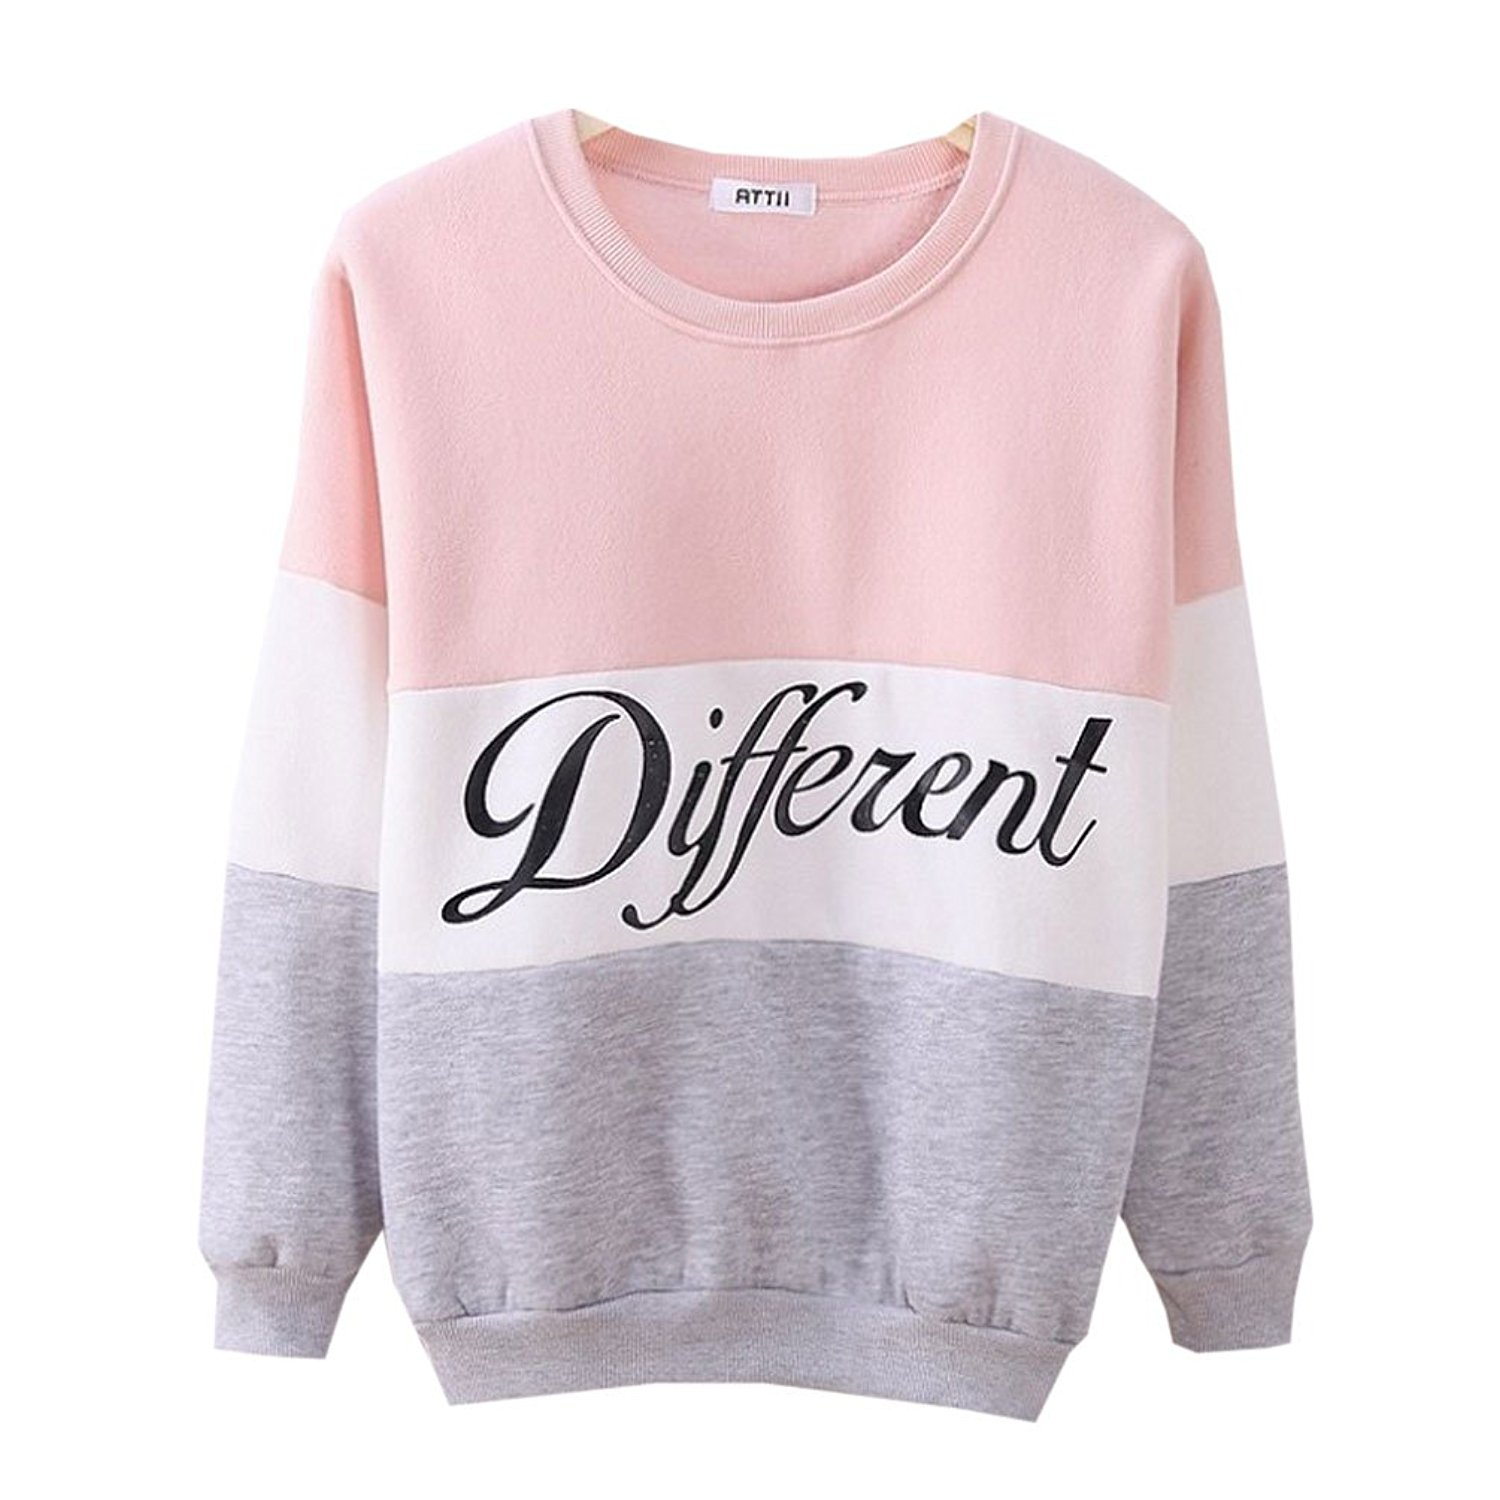 Cute Hoodies Sweater Pullover Double Deer Geometric Printed Medium Pink at Amazon Women's Clothing store